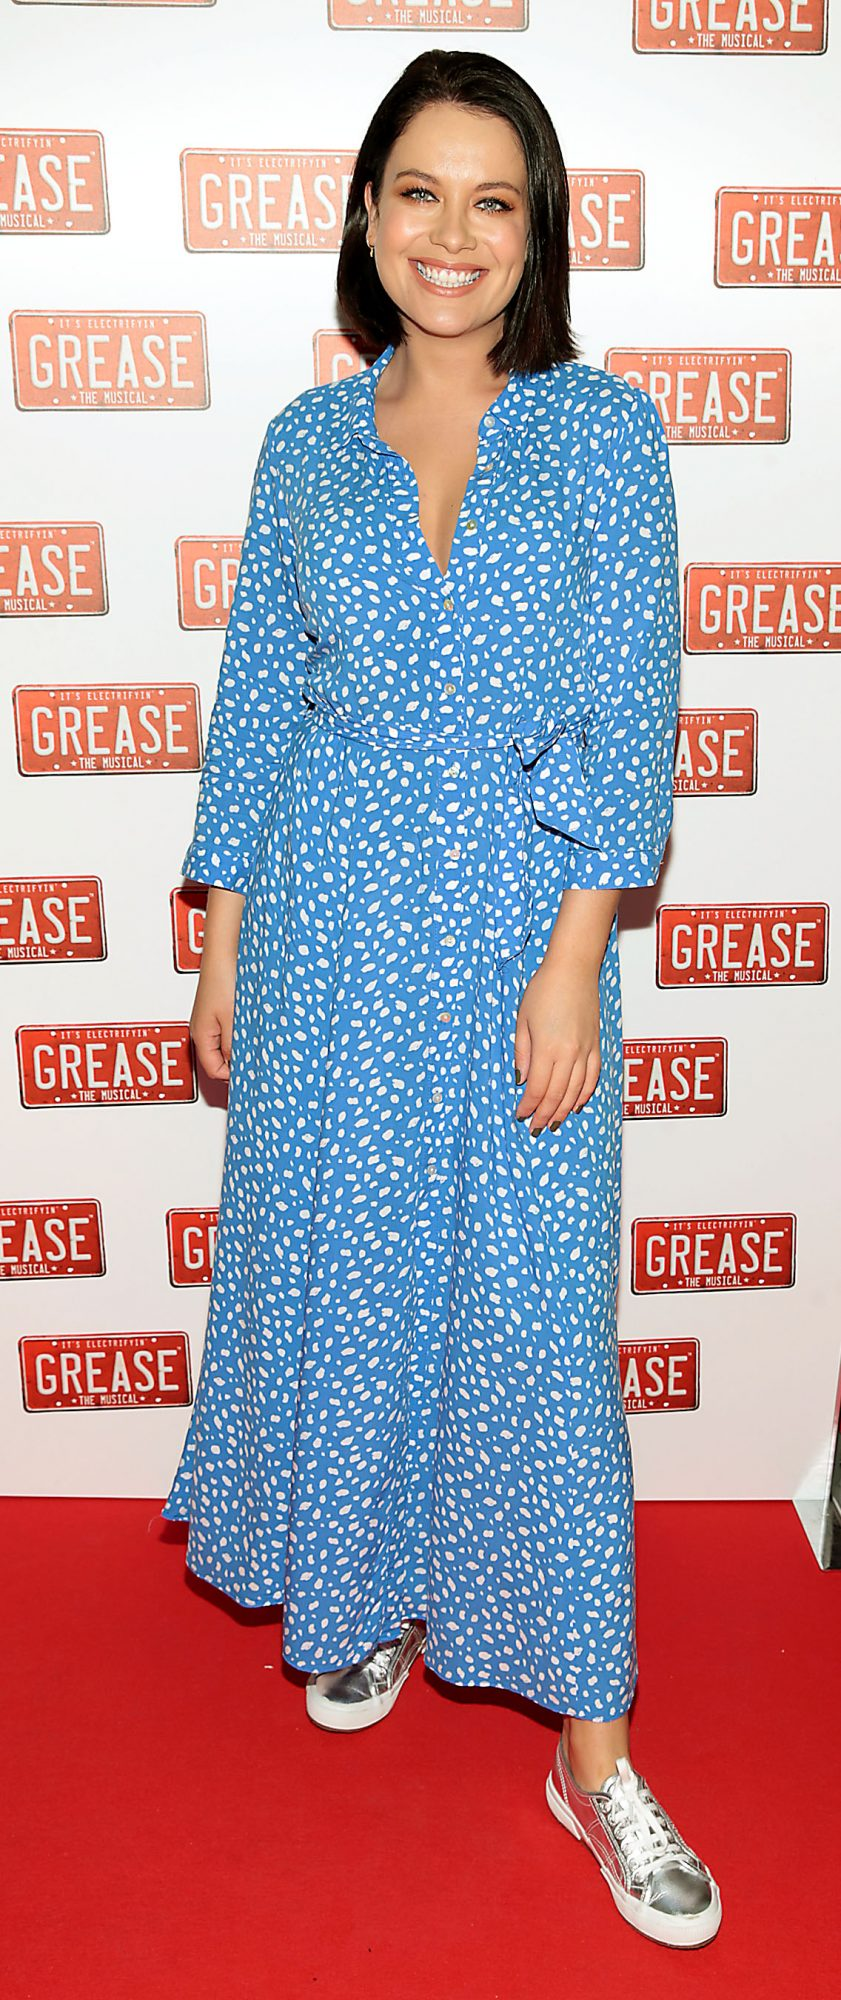 Michele McGrath pictured at the opening night of the musical Grease at the Bord Gais Energy Theatre, Dublin. Pic: Brian McEvoy